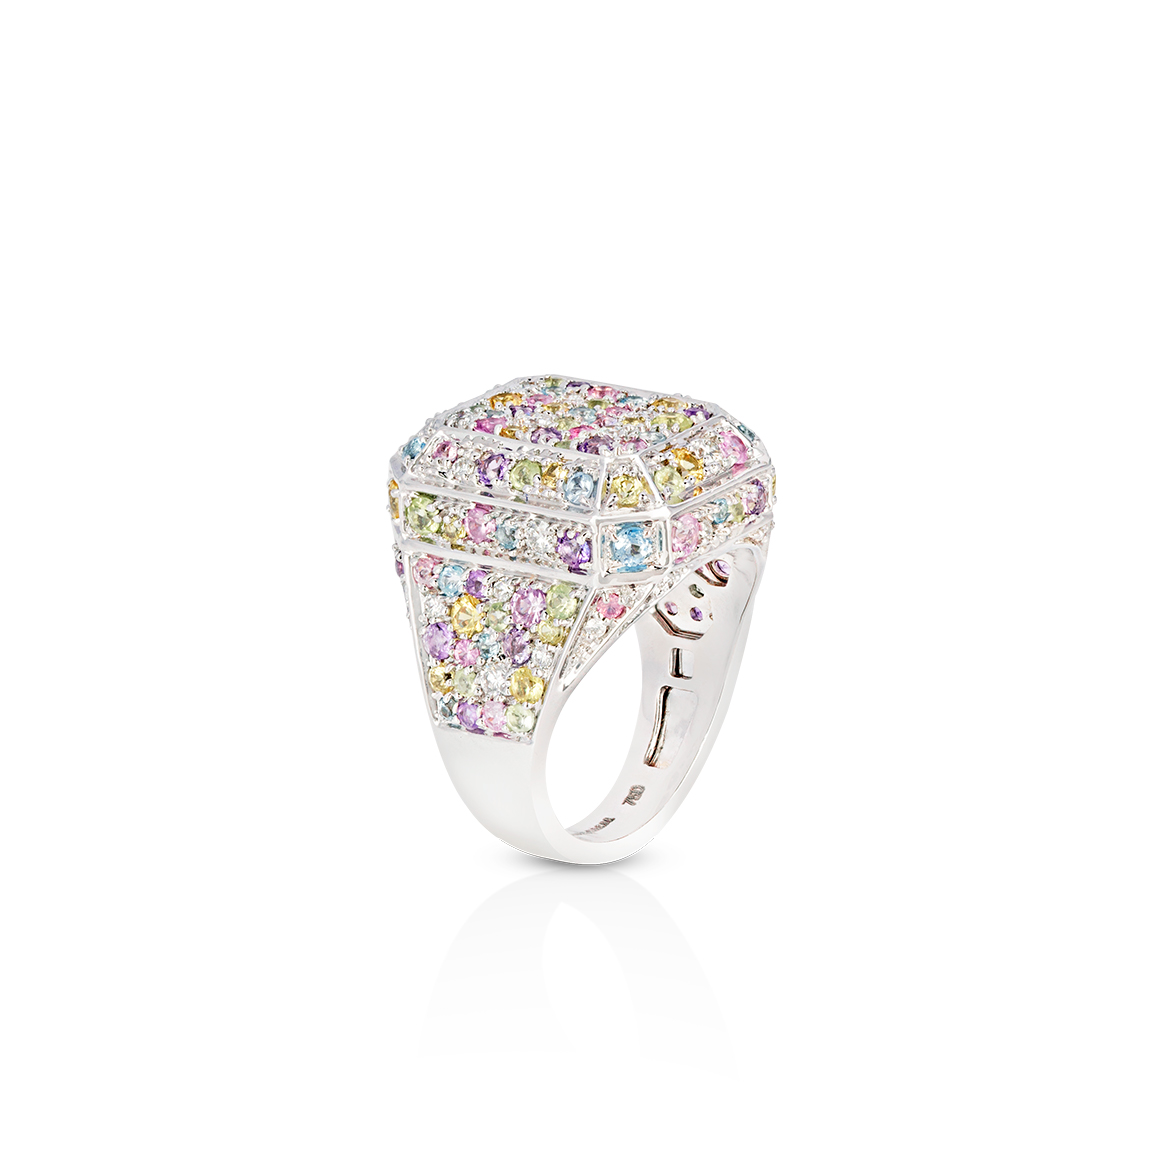 Disco White Gold Ring by Aisha Baker in 18K White Gold with Diamonds, Yellow and Pink Sapphire, Aquamarine, Peridot and Amethyst ($5,500)